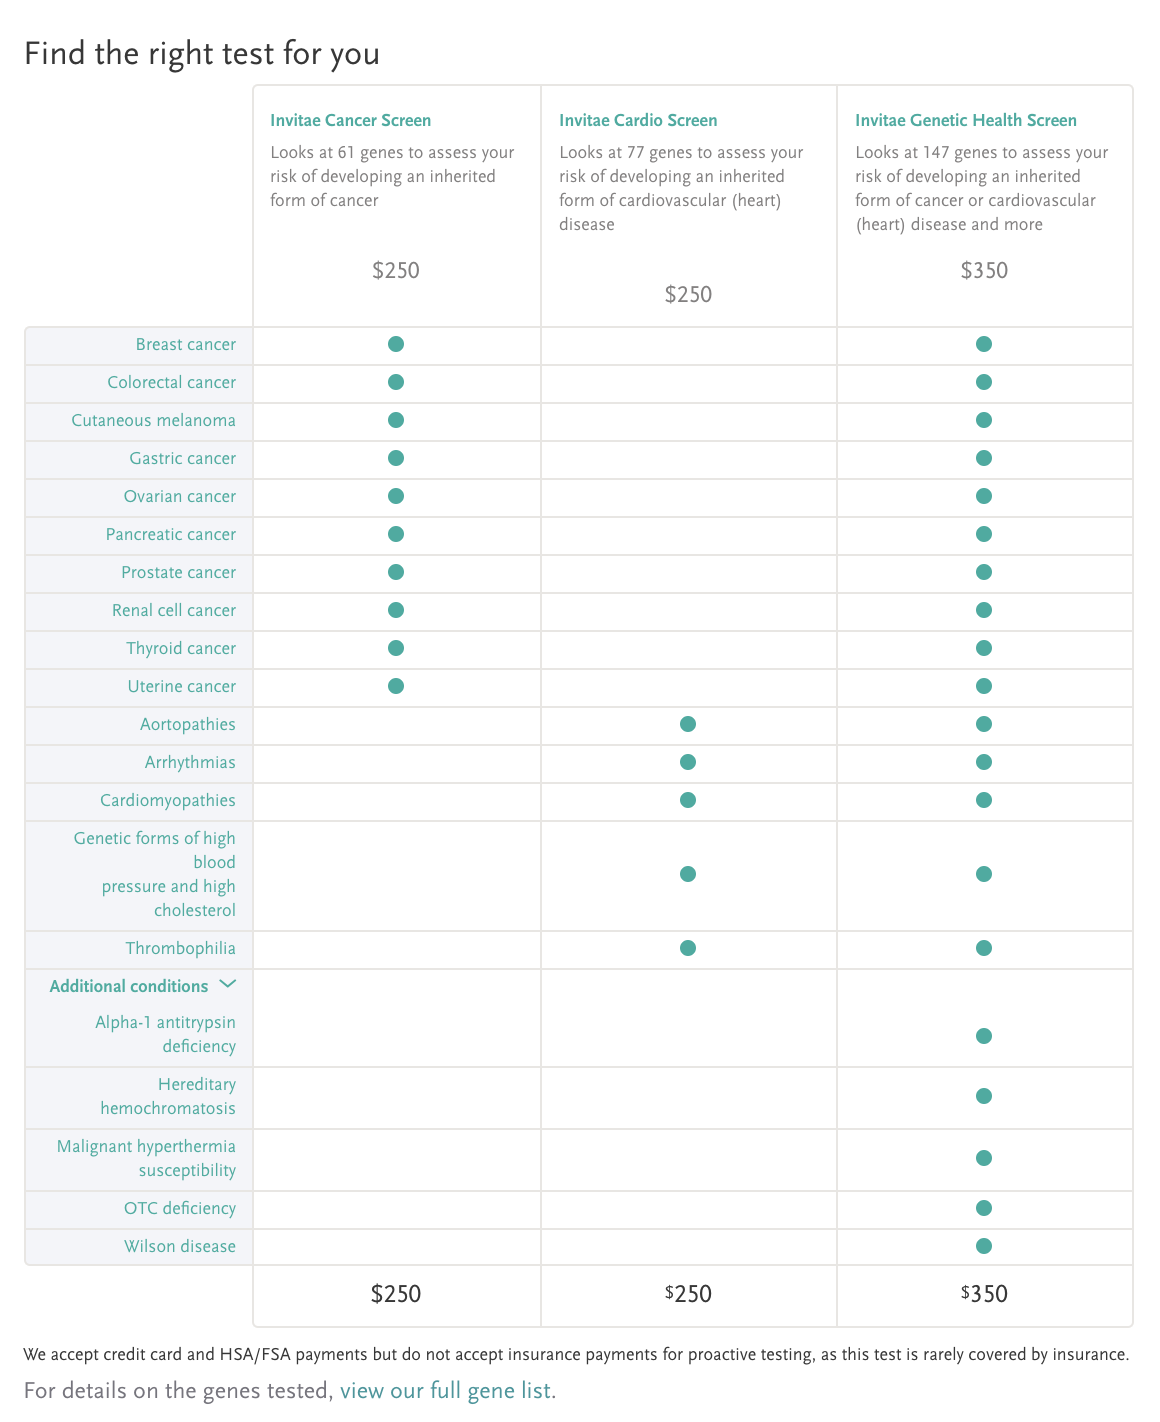 Comparison of proactive genetic tests offered by Invitae.